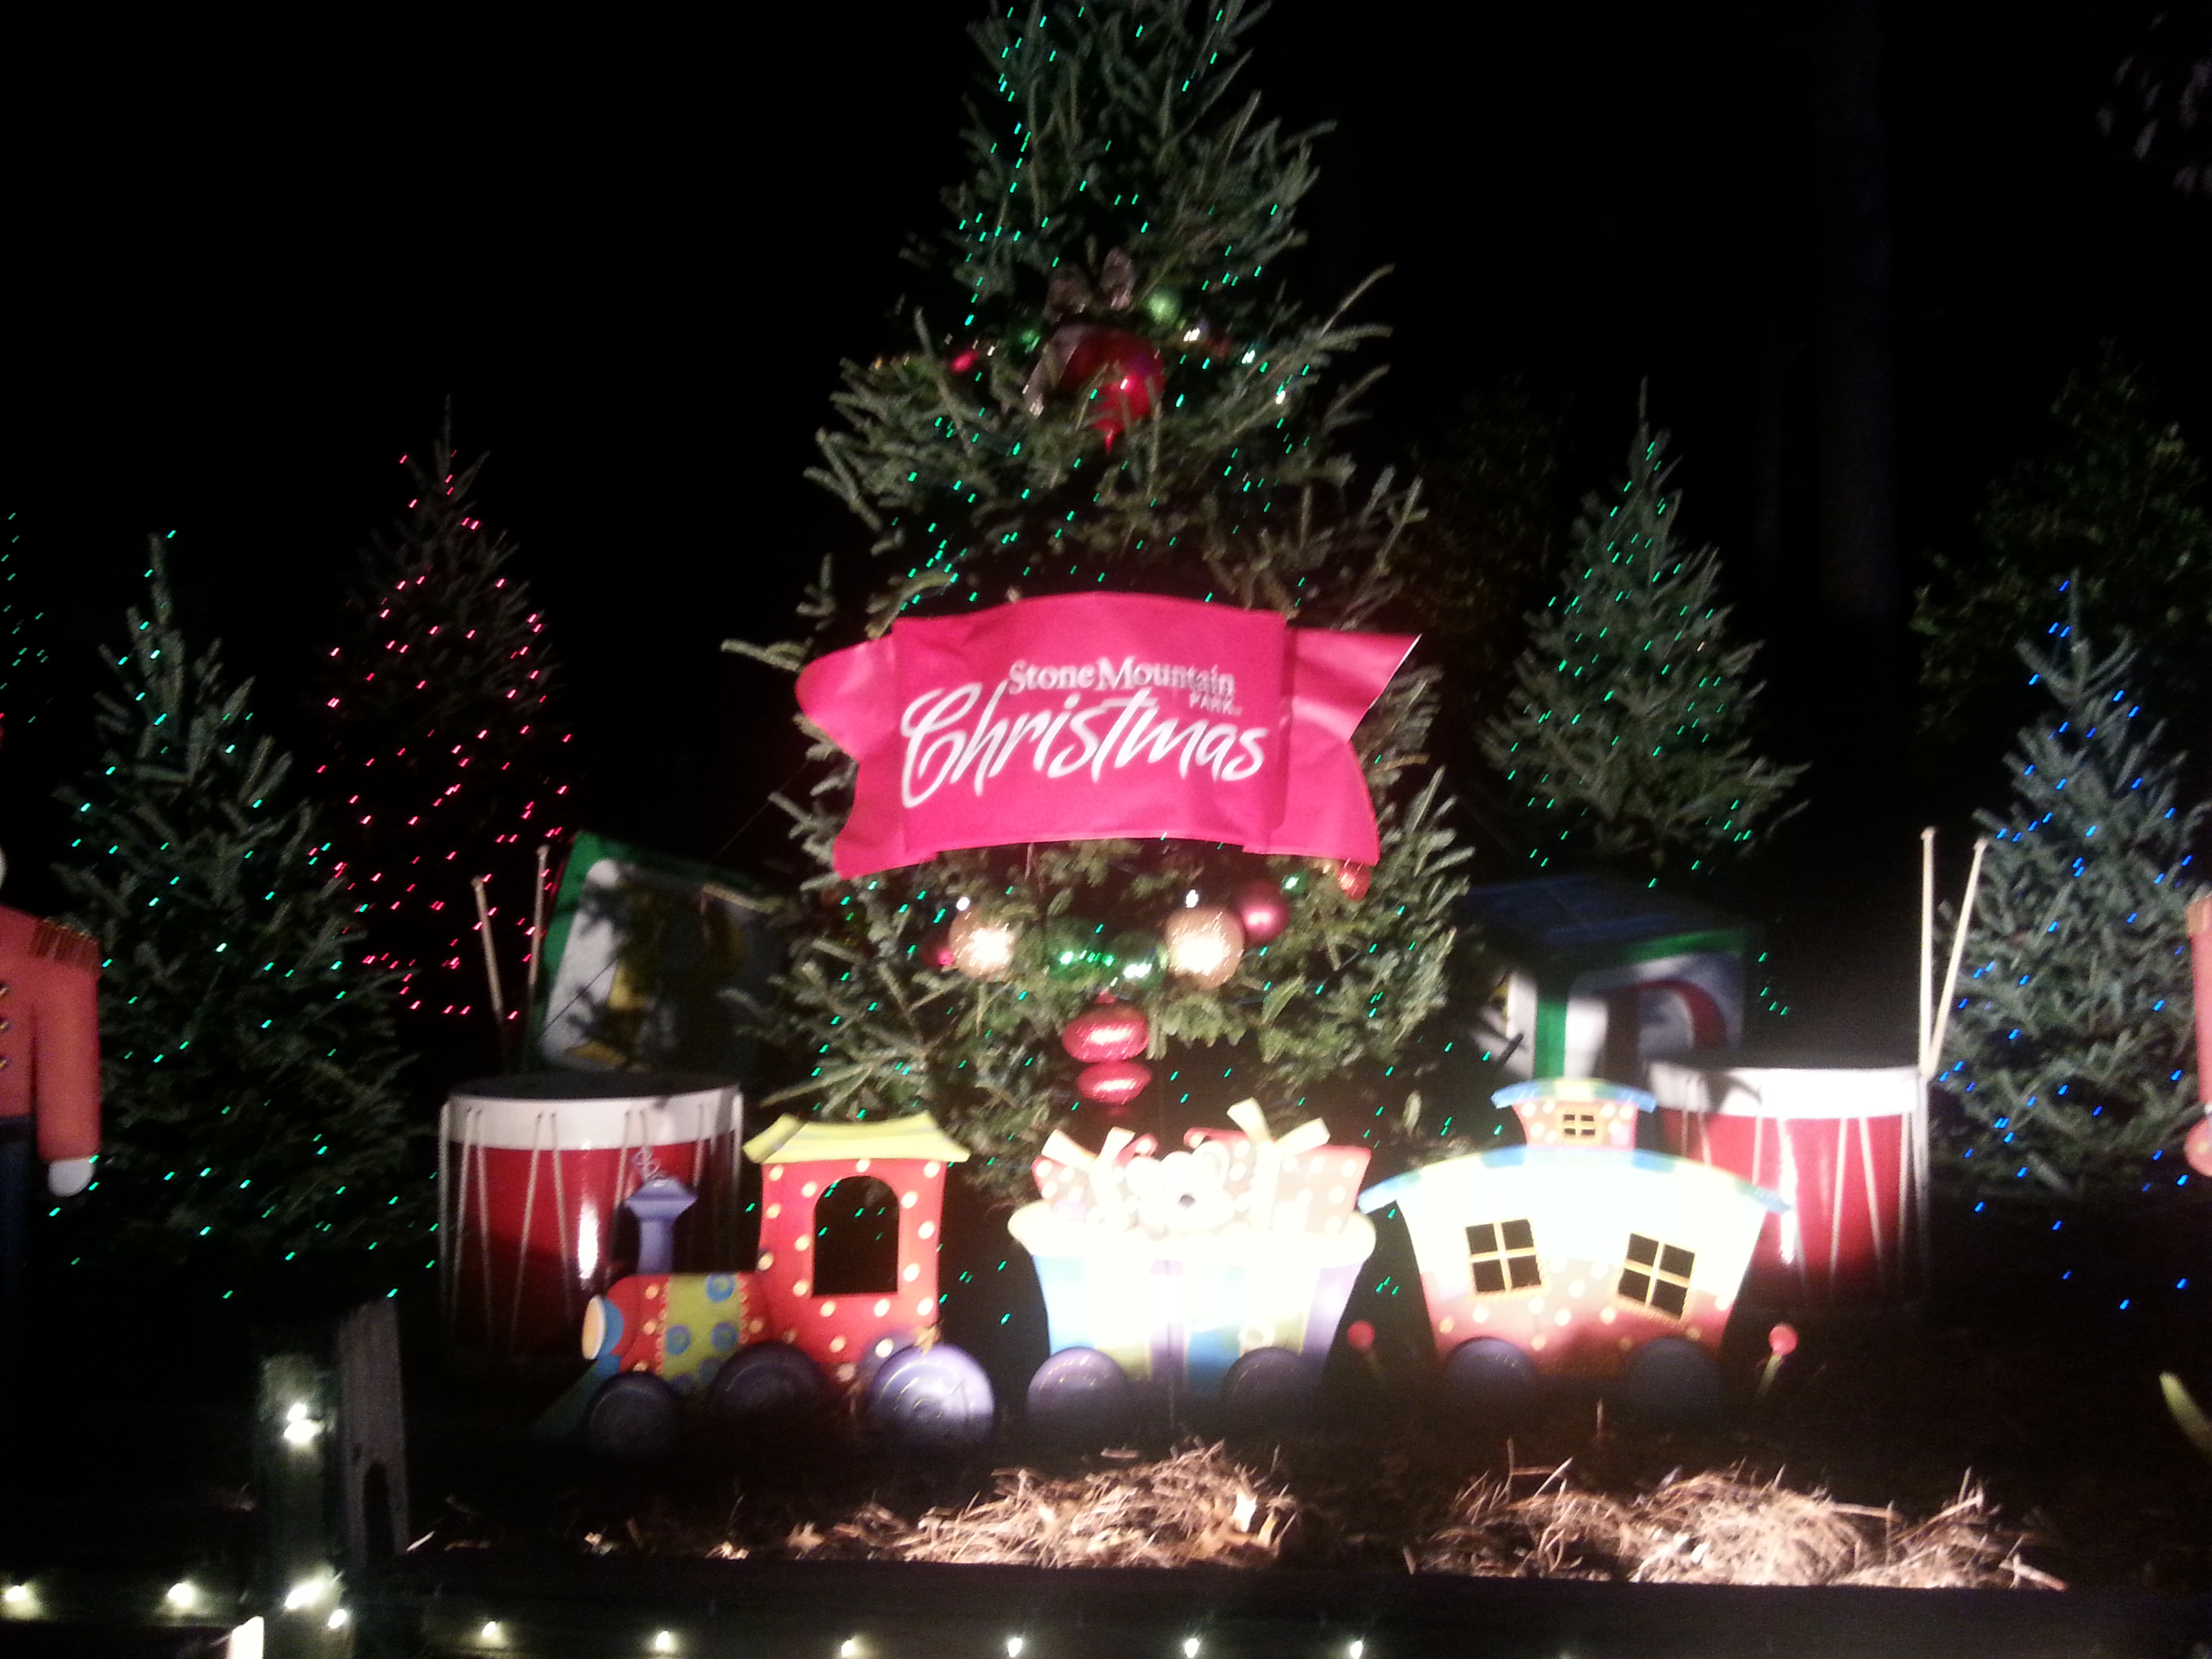 Stone Mountain Christmas.Stone Mountain Christmas Has Started Review Bernetta Style